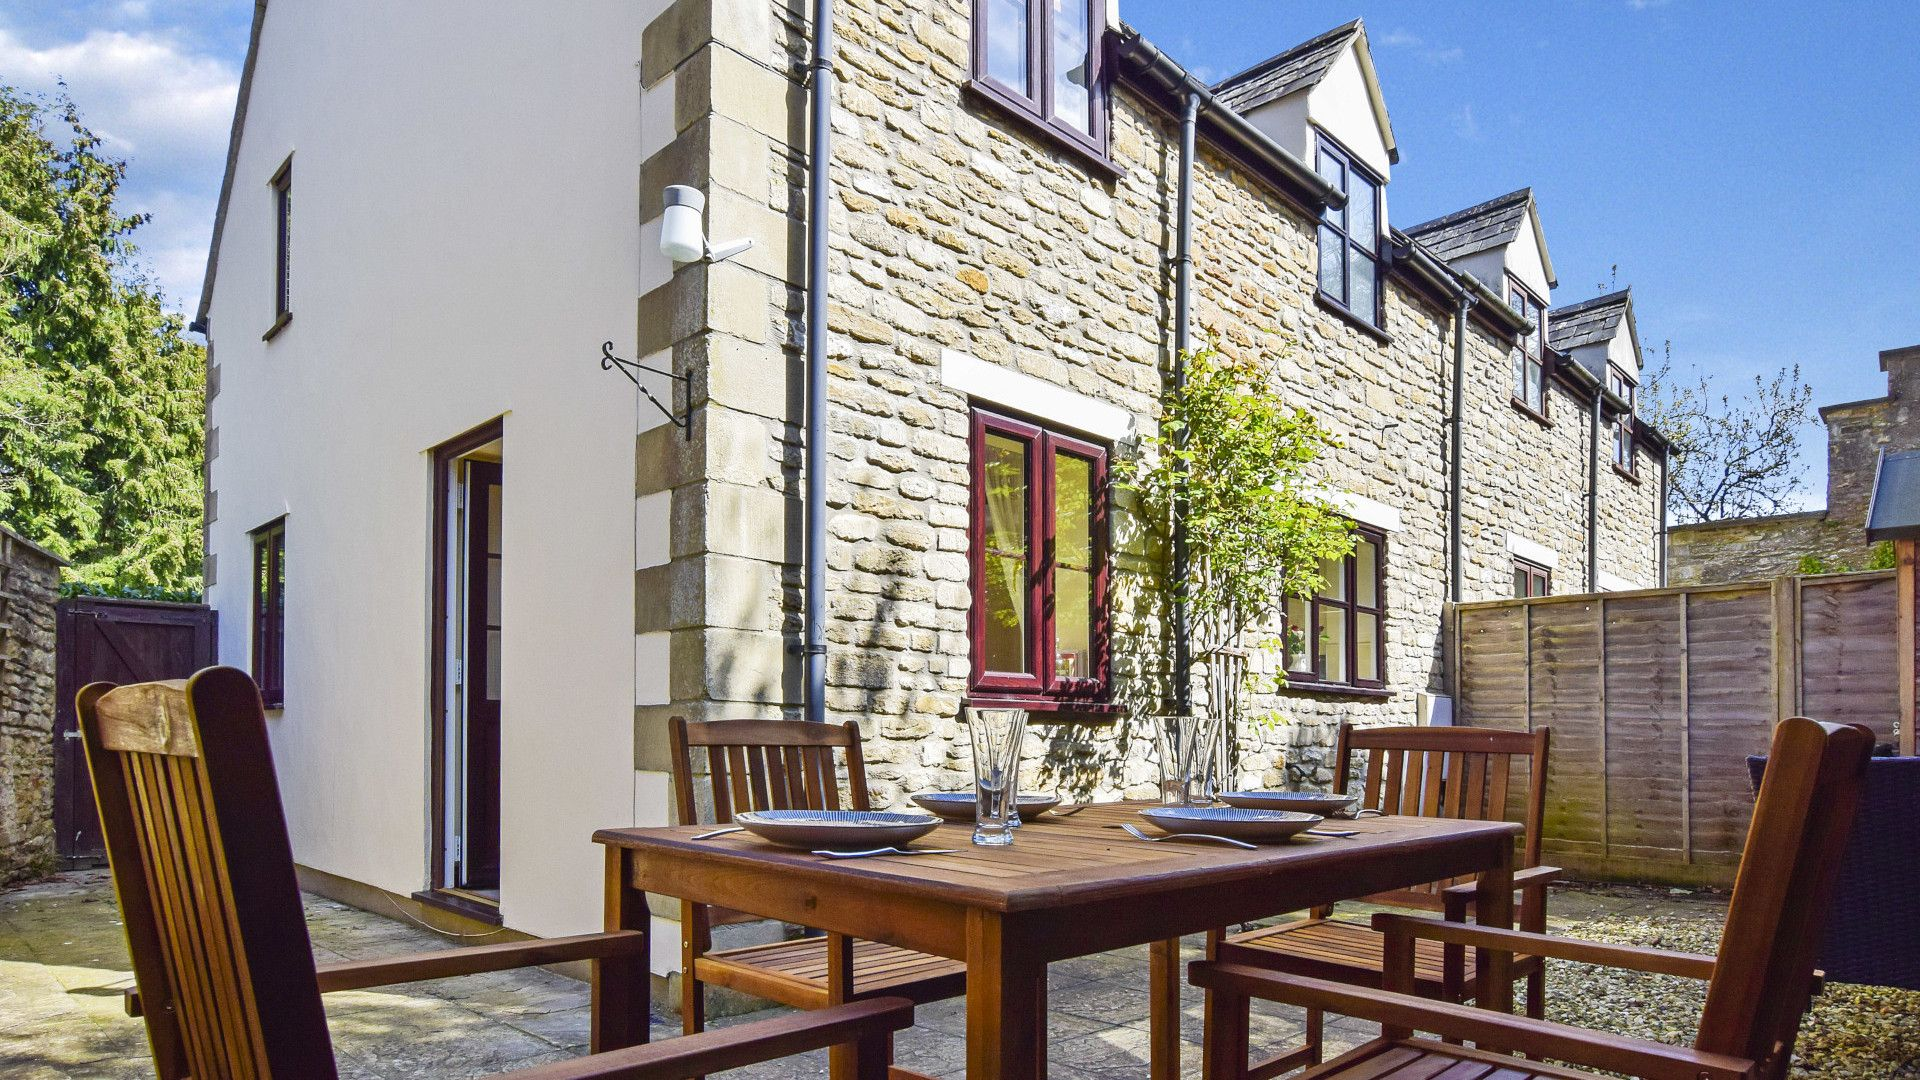 Courtyard garden, Old Stables, Bolthole Retreats